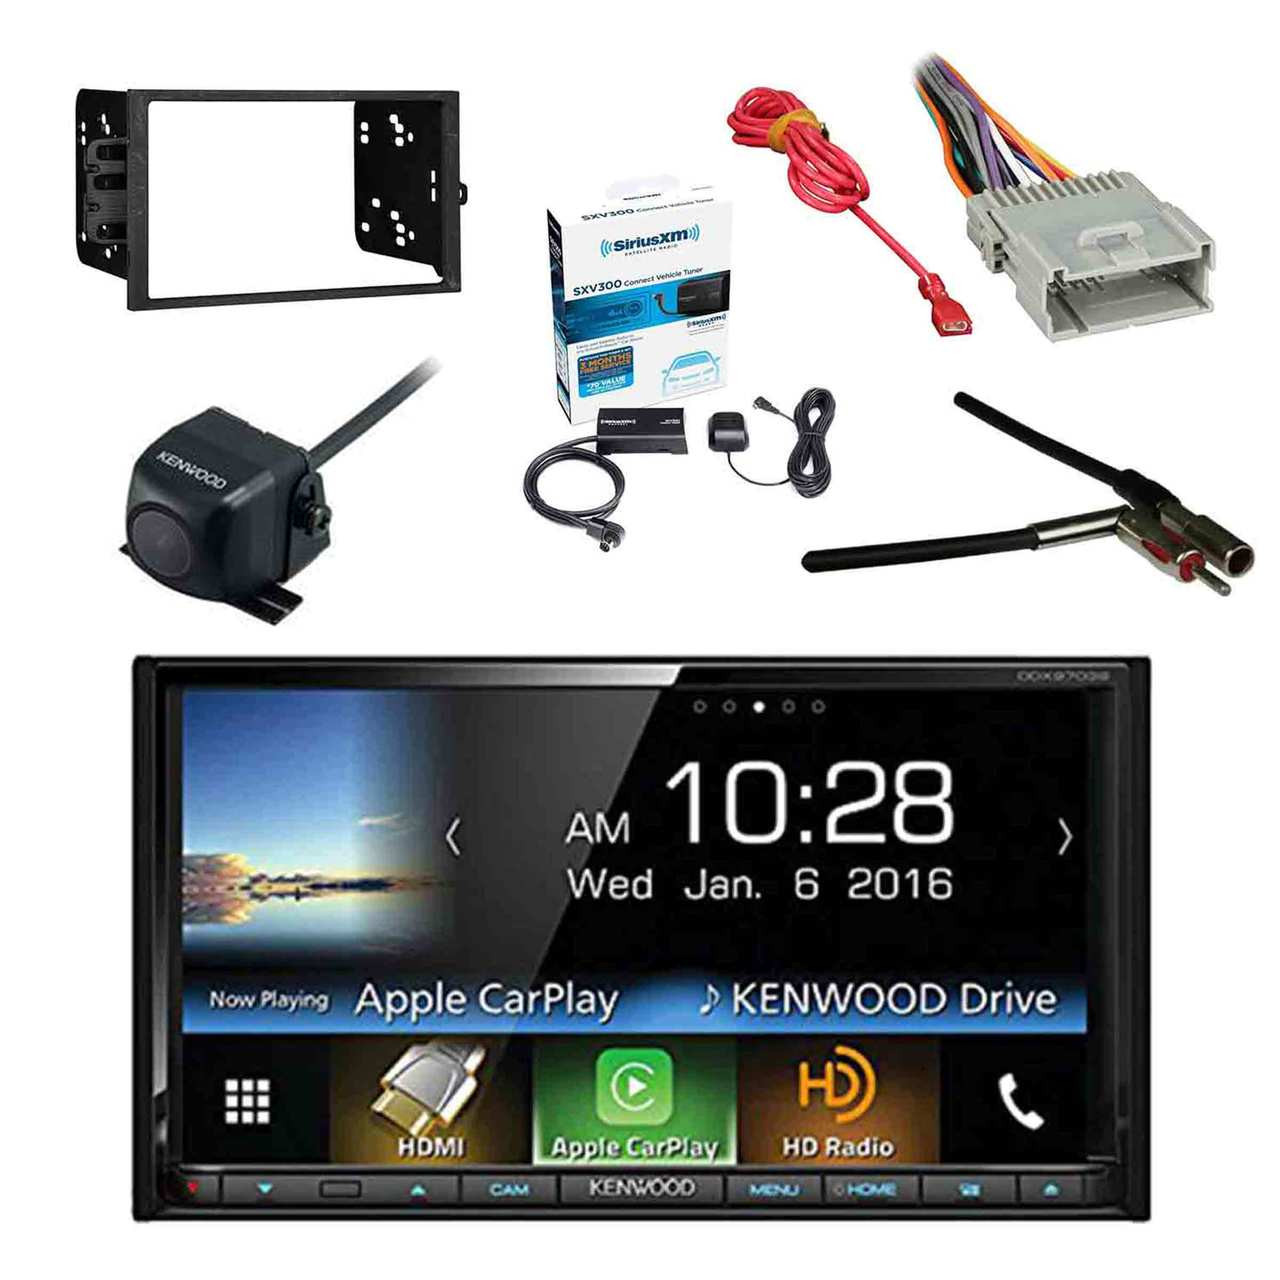 hight resolution of kenwood ddx9703s 2 din dvd cd am fm car stereo receiver w sirius radio tuner kenwood rearview wide angle camera metra 2din dash kit for radio